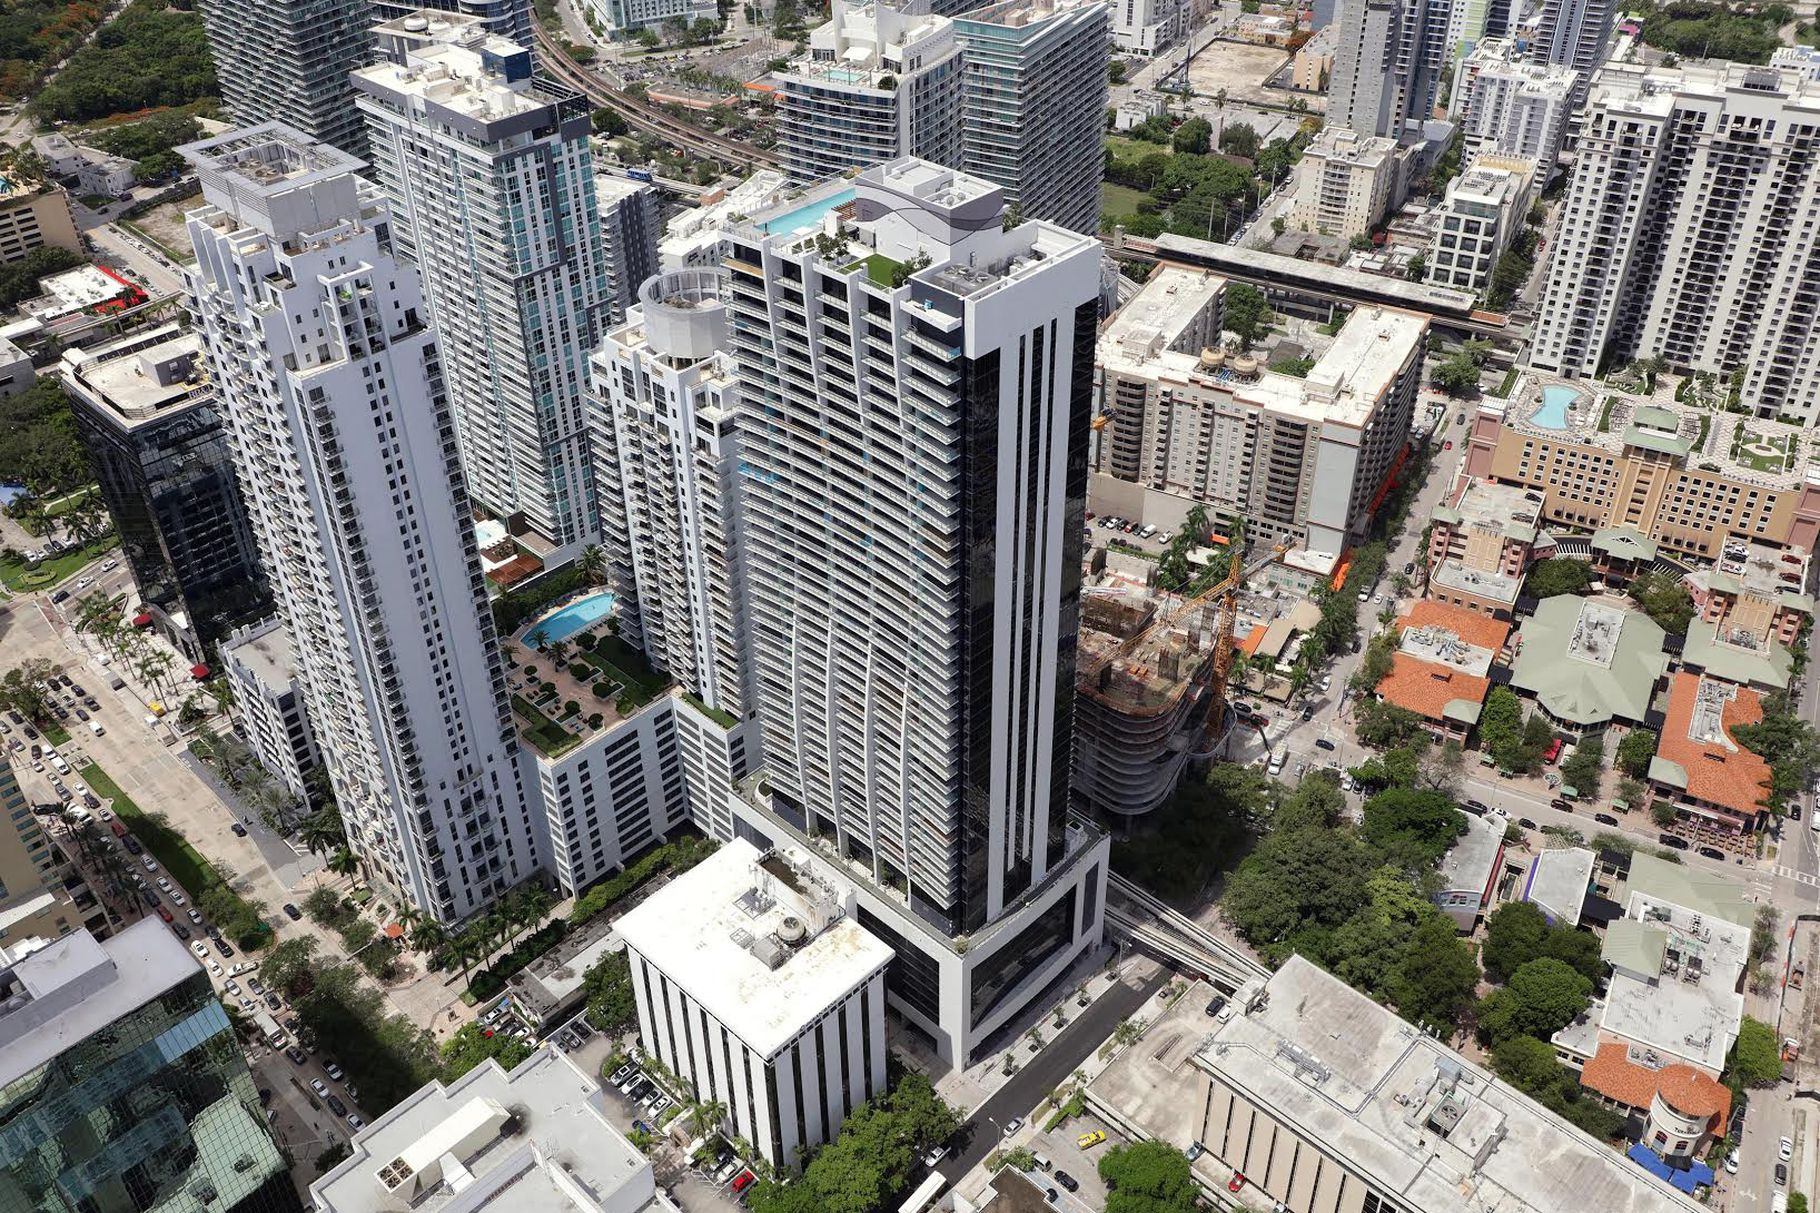 Brickell Keeps Rolling as Key International & 13th Floor Investments' 1010 Brickell Receives TCO